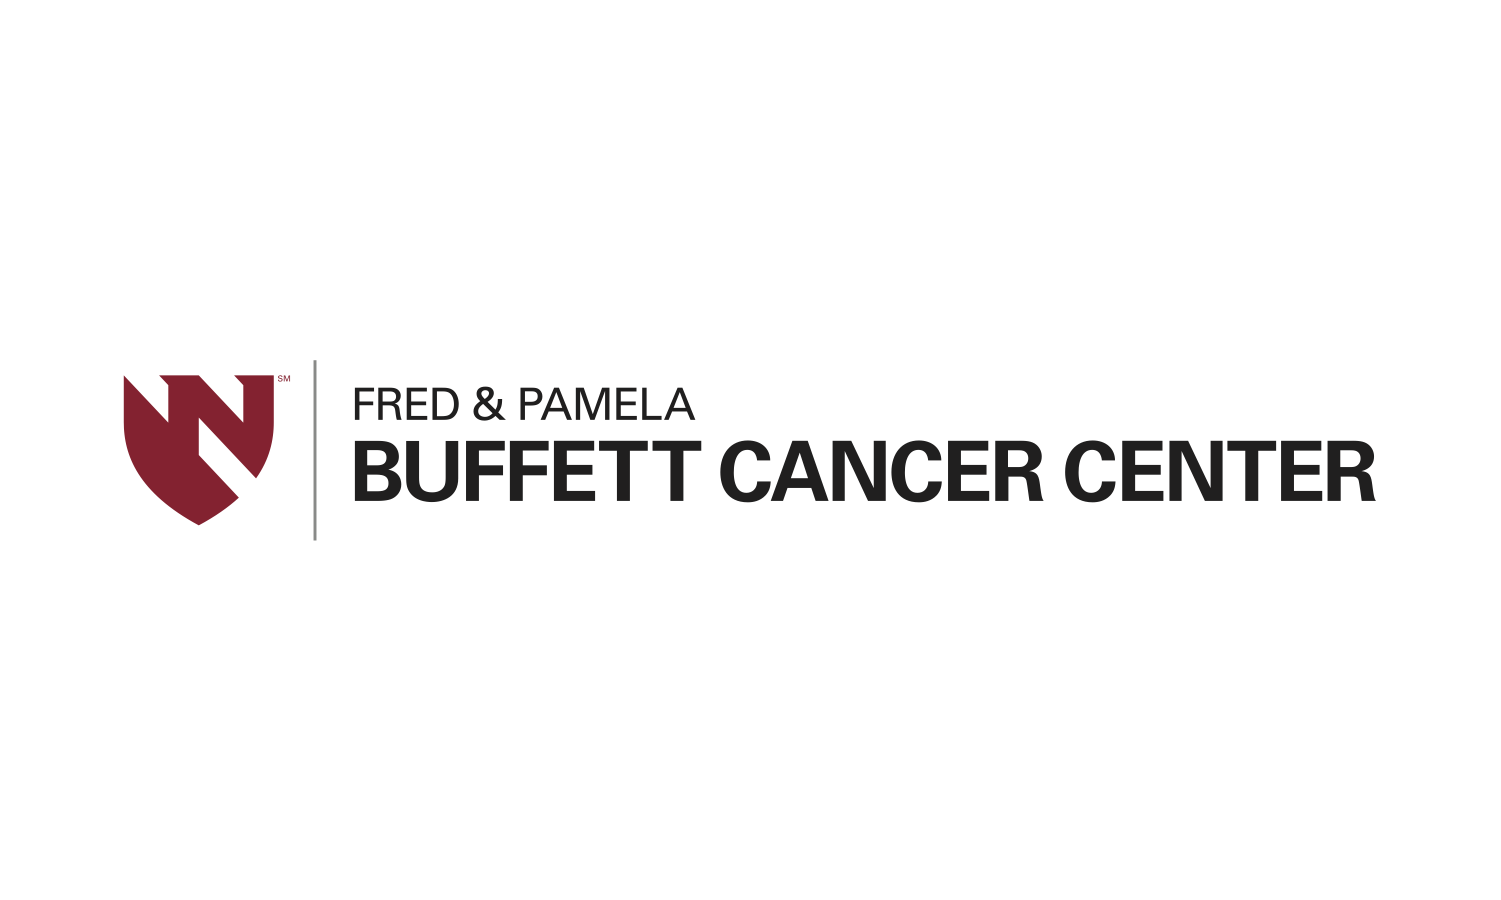 fred & pamela buffett cancer center - omaha - Support Groups: Cancer Survivorship Group, Brain Tumor Support Group, Blood and Marrow Stem Cell Transplants (BMSCT), Colorectal Cancer Support Group. The Fred & Pamela Buffett Cancer Center has begun changing forever the way cancer is diagnosed and treated. By harnessing the most advanced biomedical and technological tools available, we are increasingly identifying the drivers behind cancer and creating precise therapies that improve outcomes. Through the use of genomics and other new diagnostic tools, we are employing precision medicine to customize therapies and care for each cancer patient.